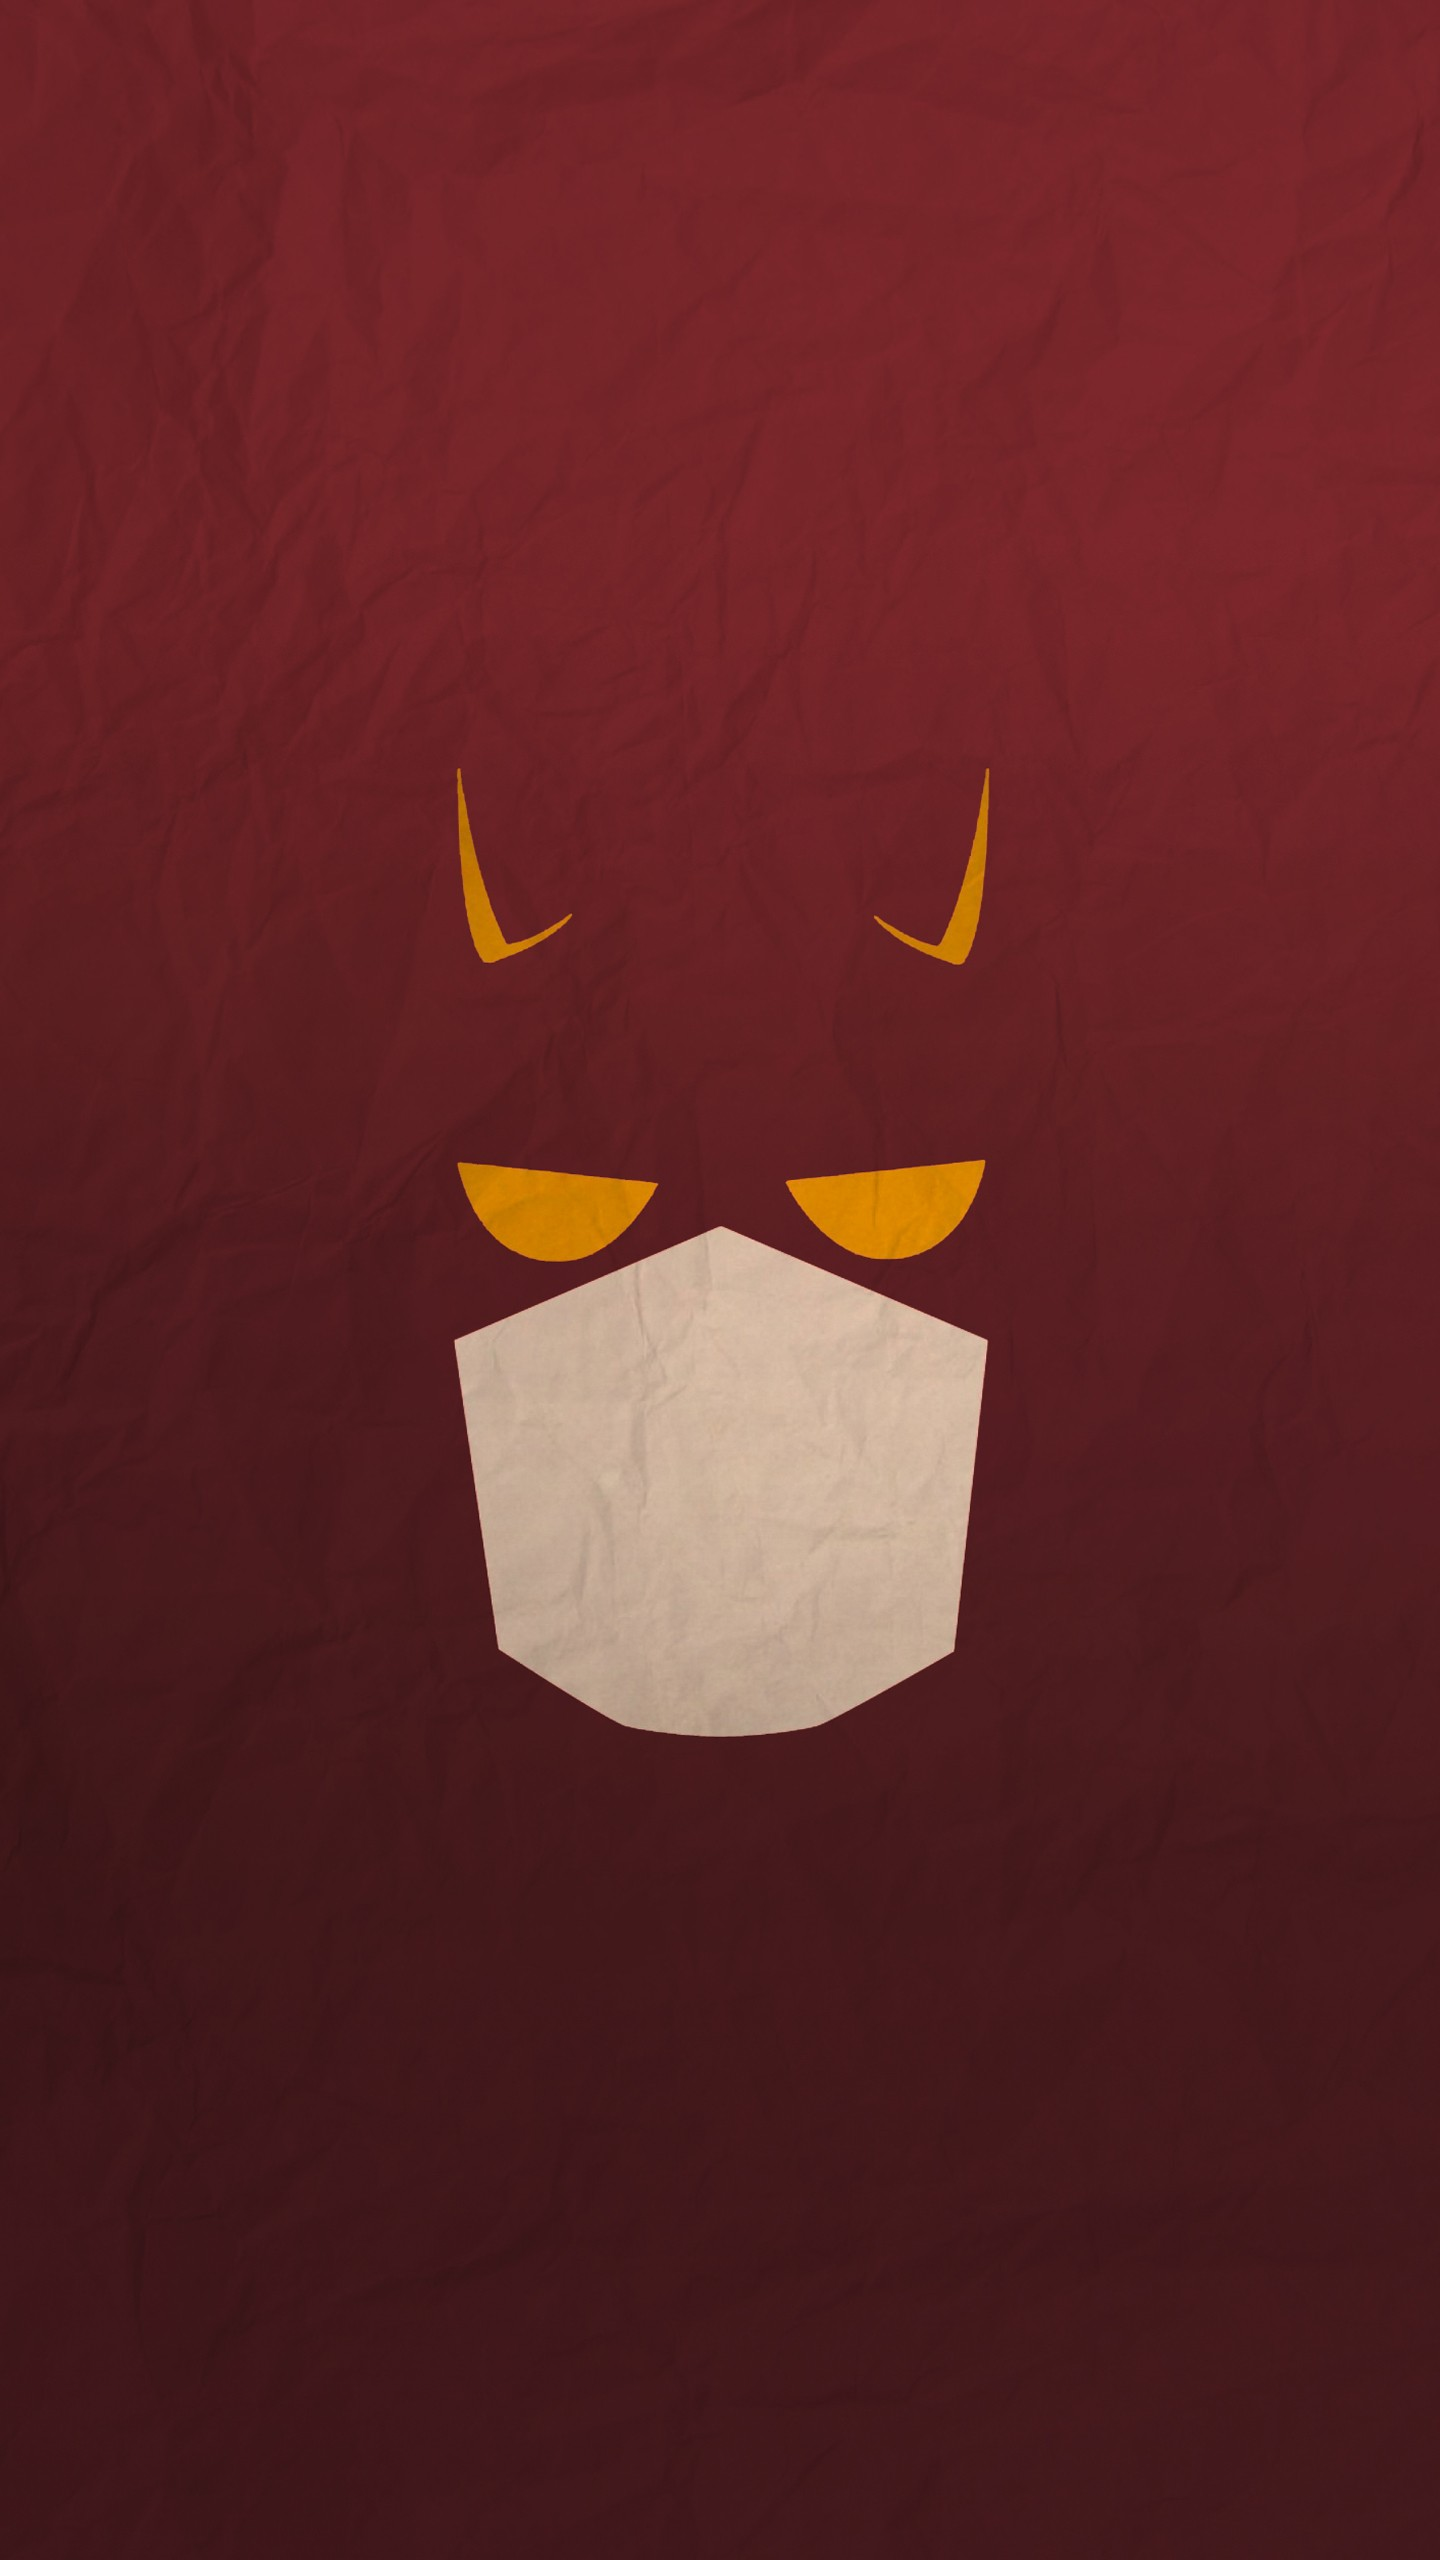 Superhero wallpaper 04 1440x2560 - Superhero iphone wallpaper hd ...